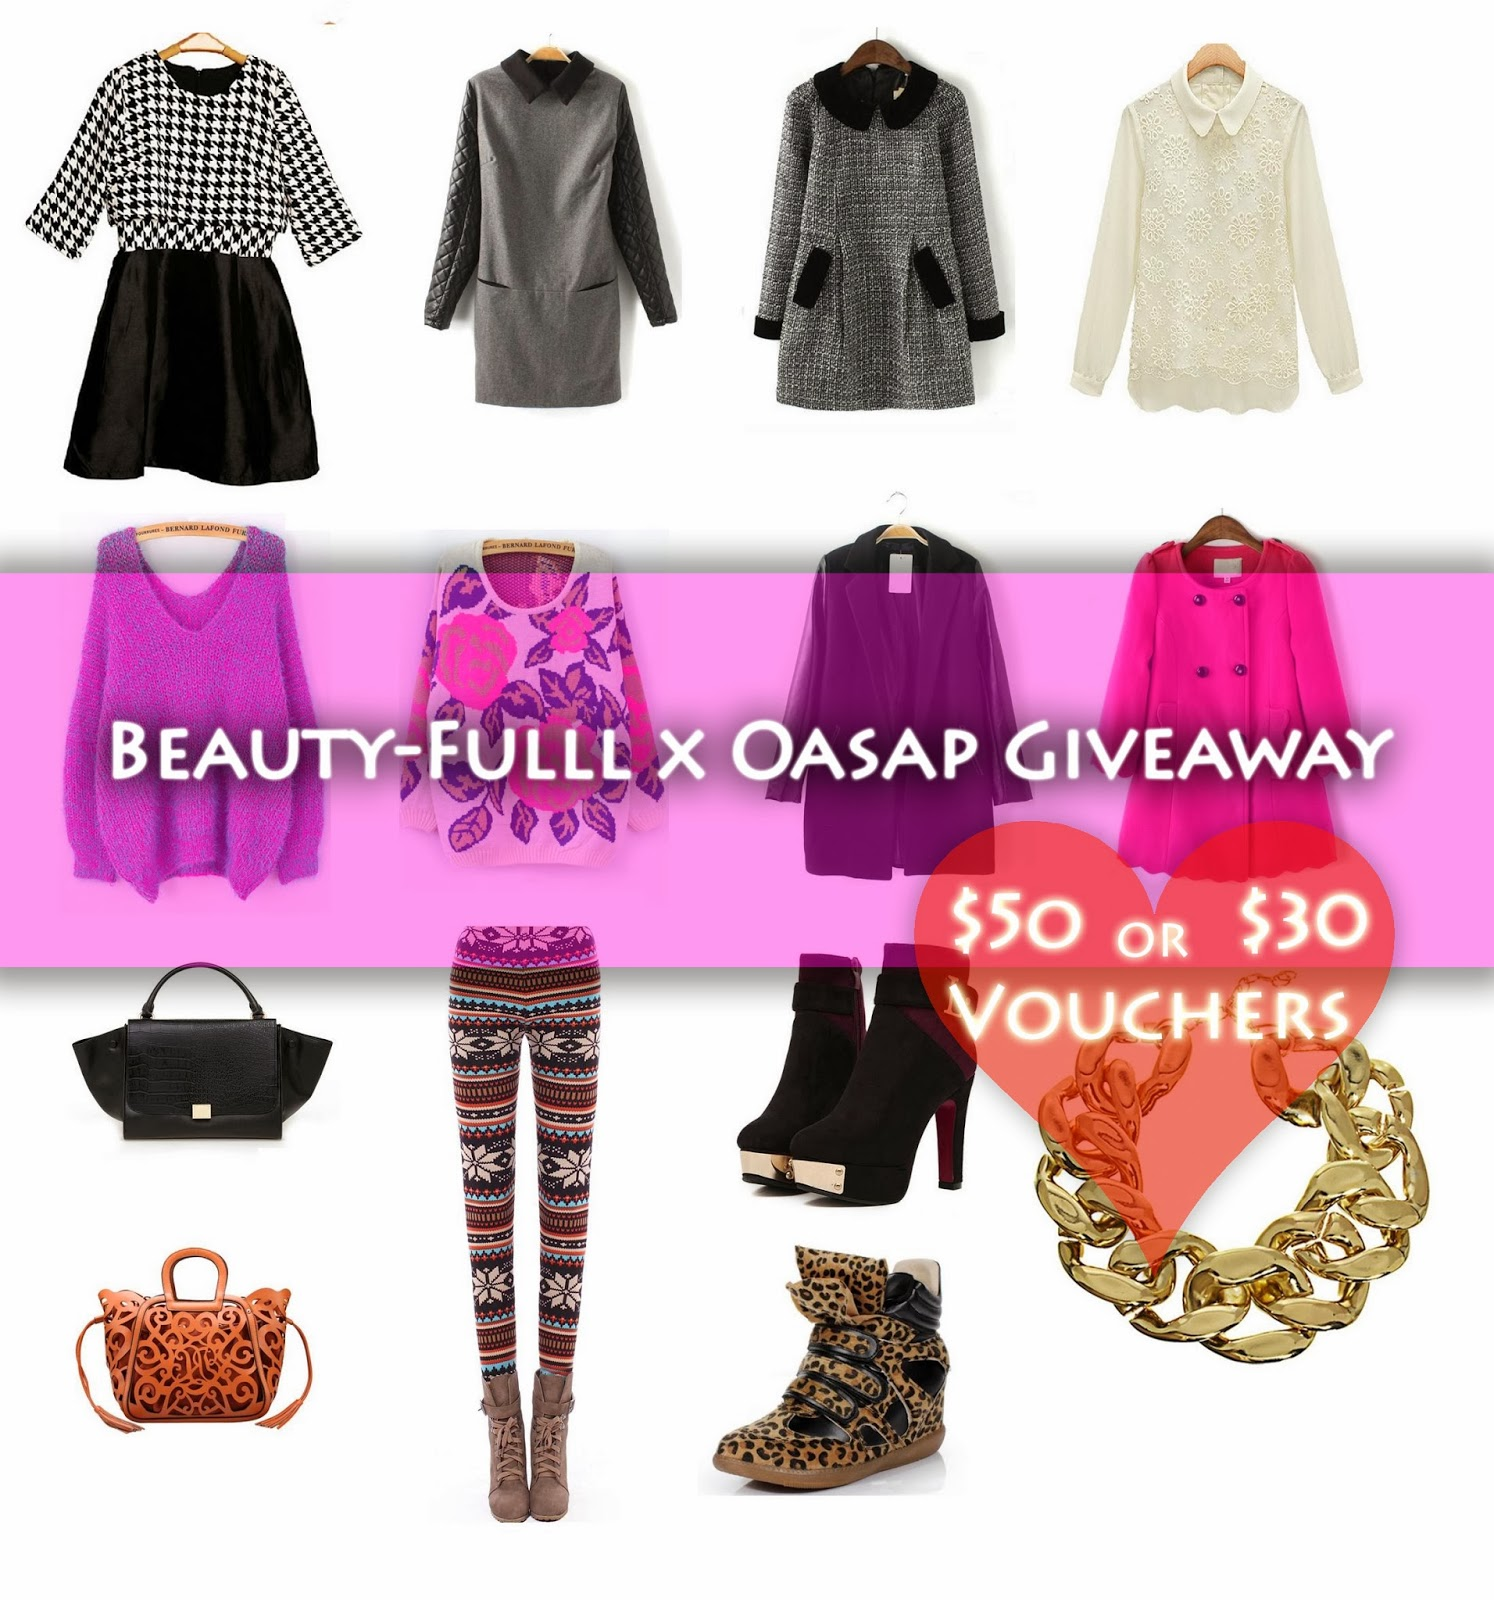 On-Going Oasap Giveaway